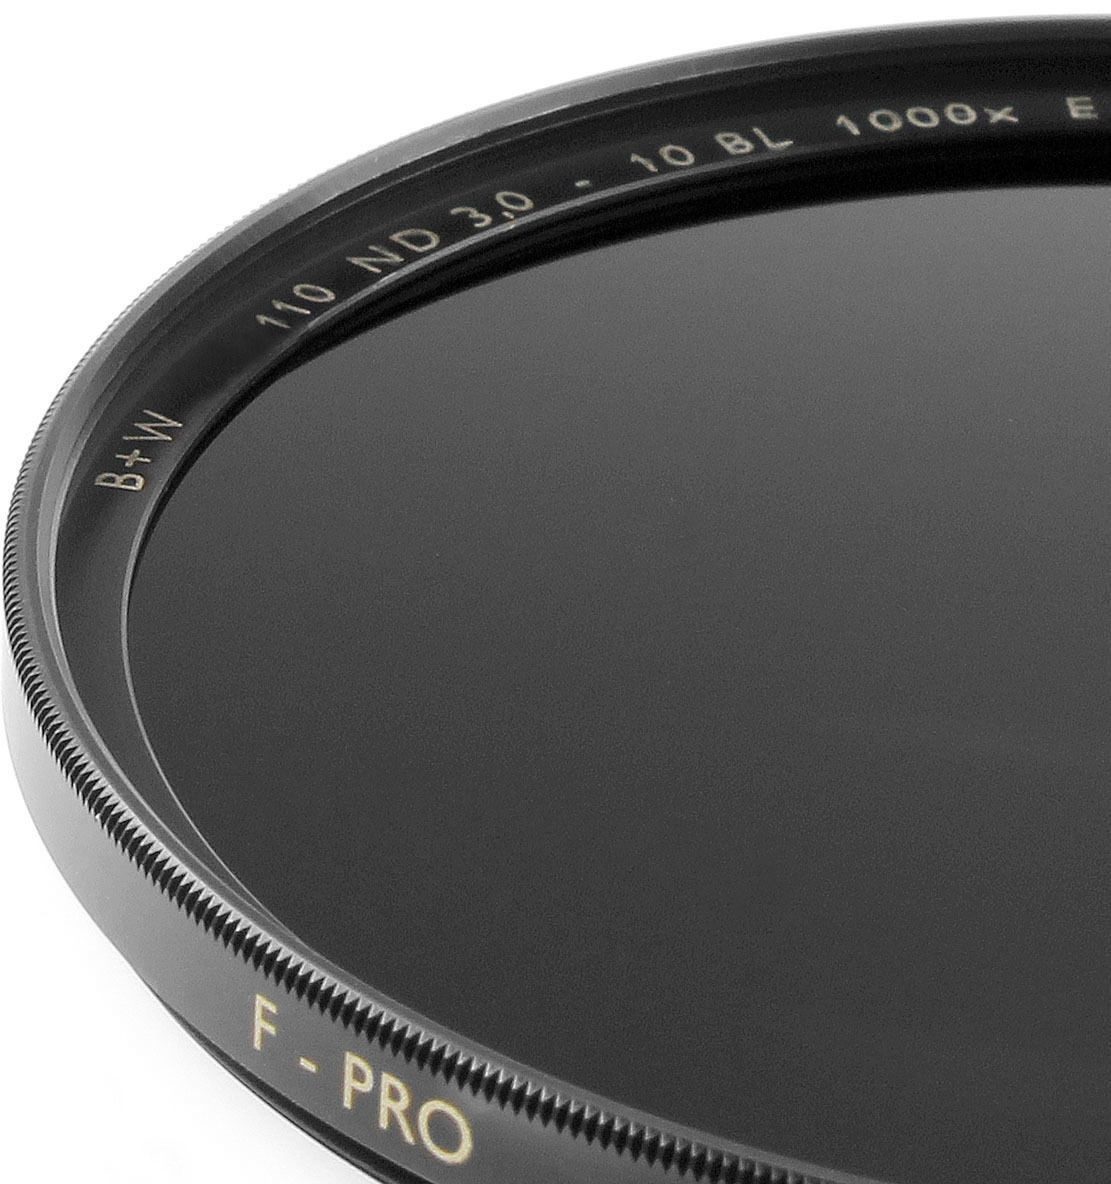 B+W 40.5 mm 3.0 ND 110 F-pro Neutral Density ND1000x SC Single Coated Filter